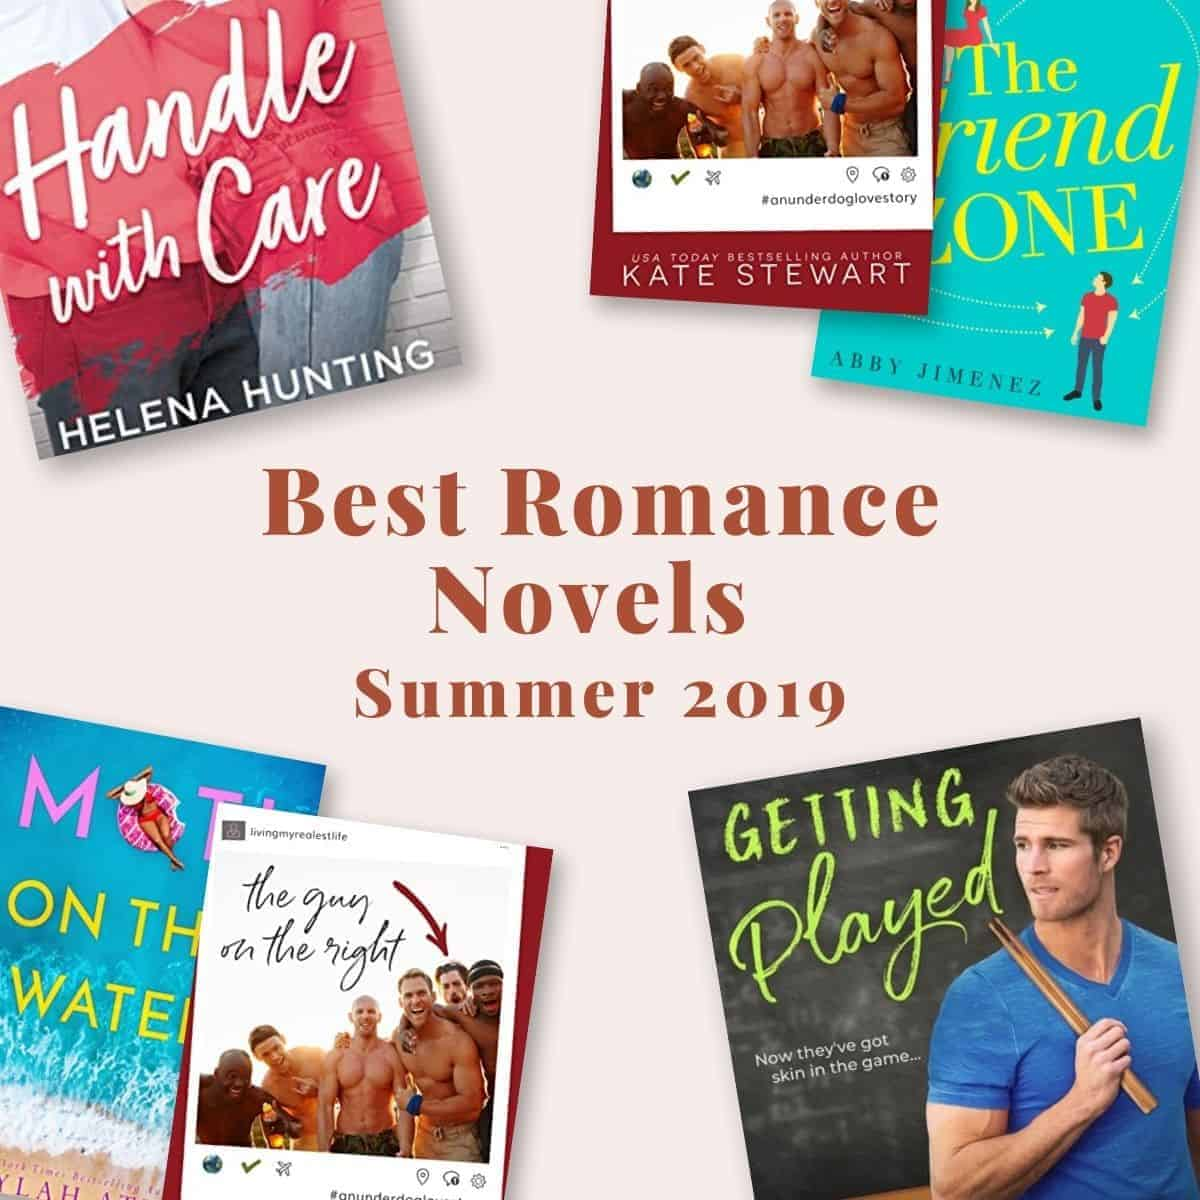 The Best Romance Novels Summer 2019: all about the 5 romance novels from this summer by Kate Stewart, Helena Hunting, Abby Jimenez, Emma Chase, and Leylah Attar!